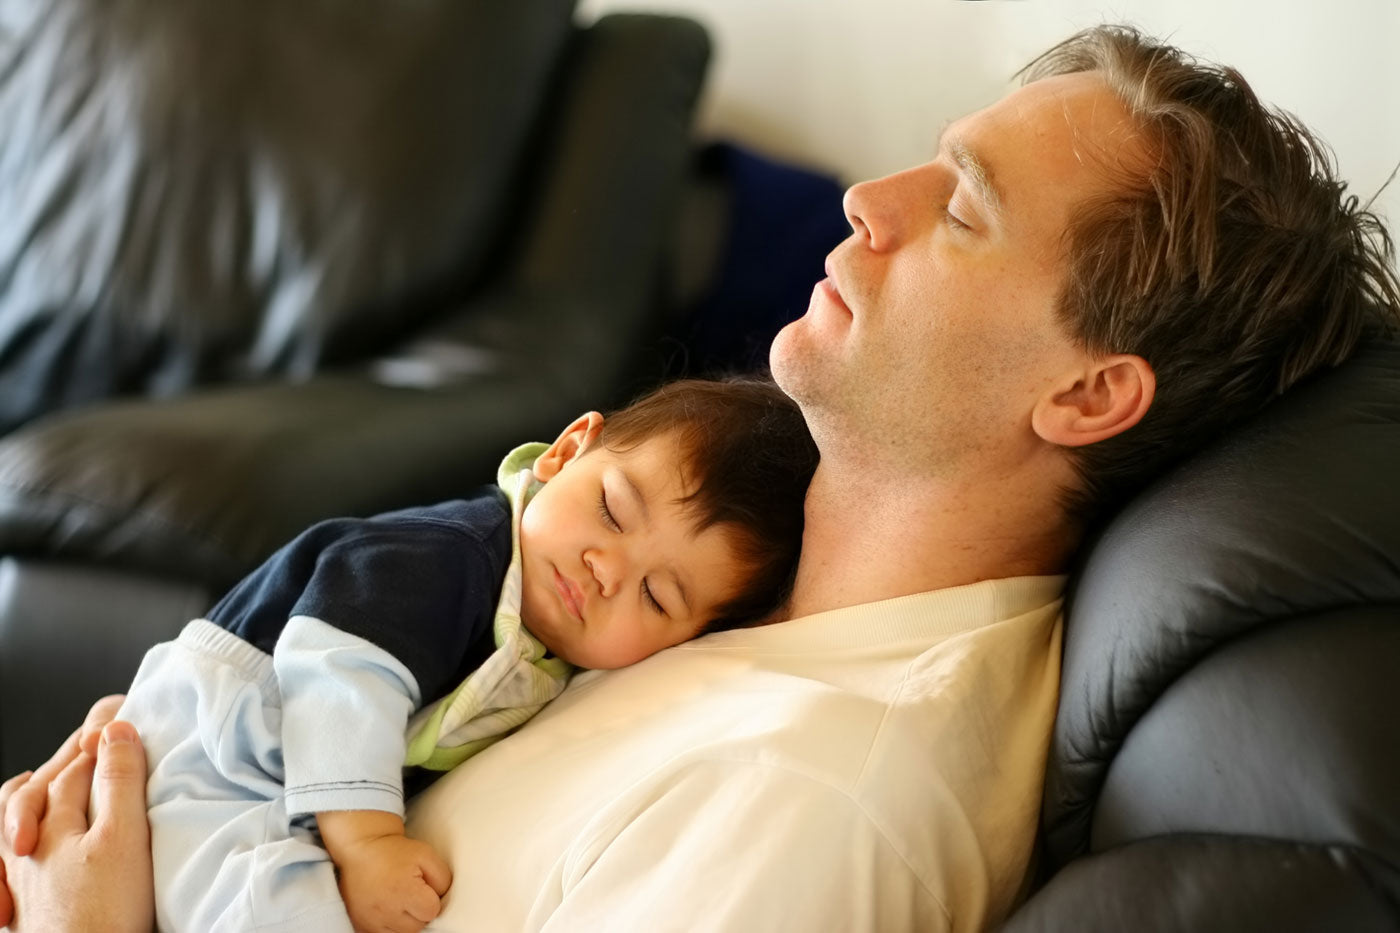 Father in recliner with baby sleeping